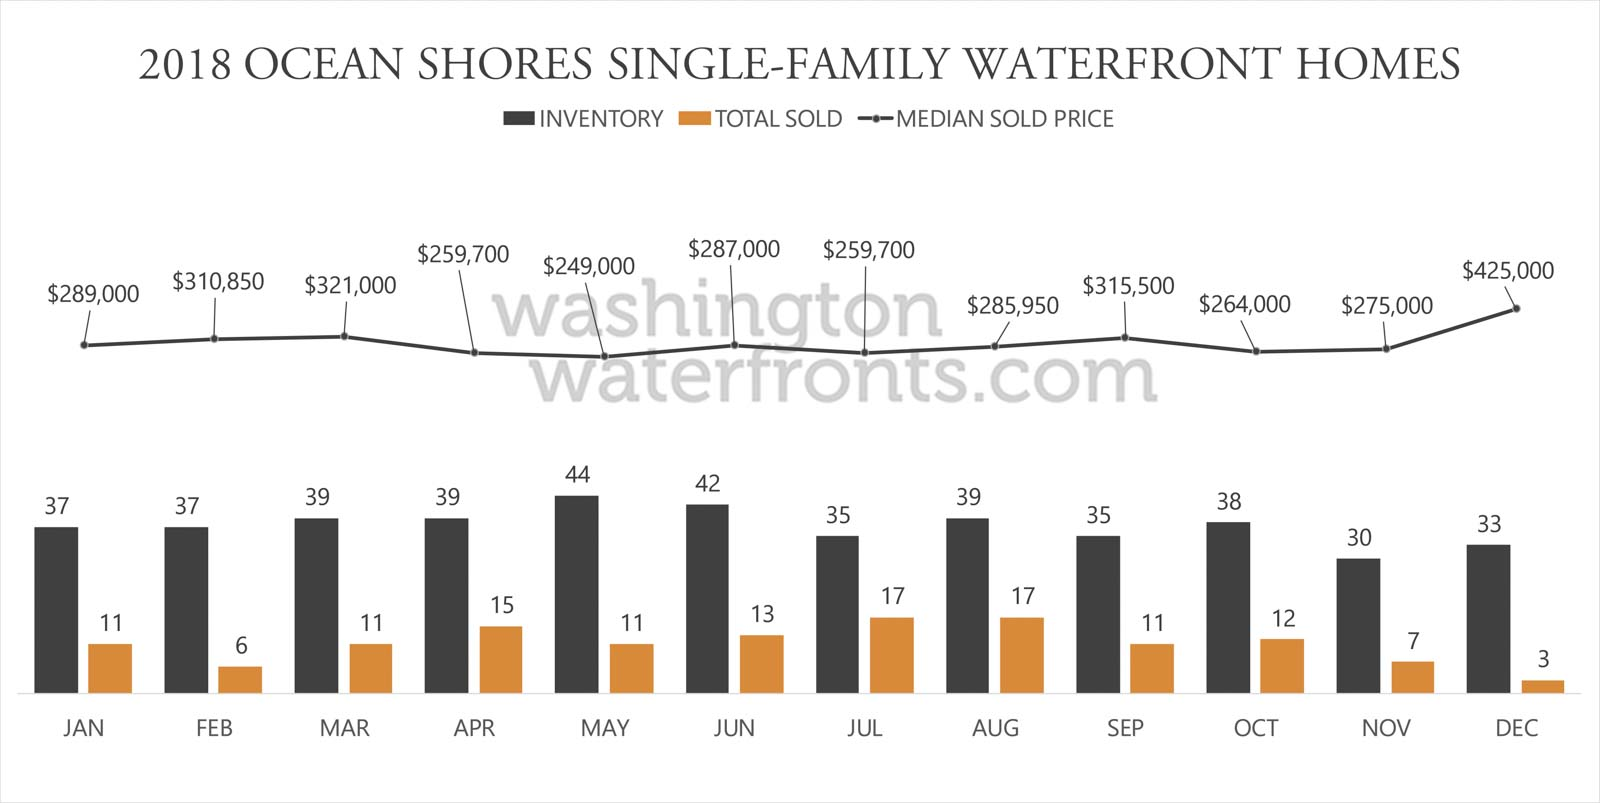 Ocean Shores Waterfront Inventory